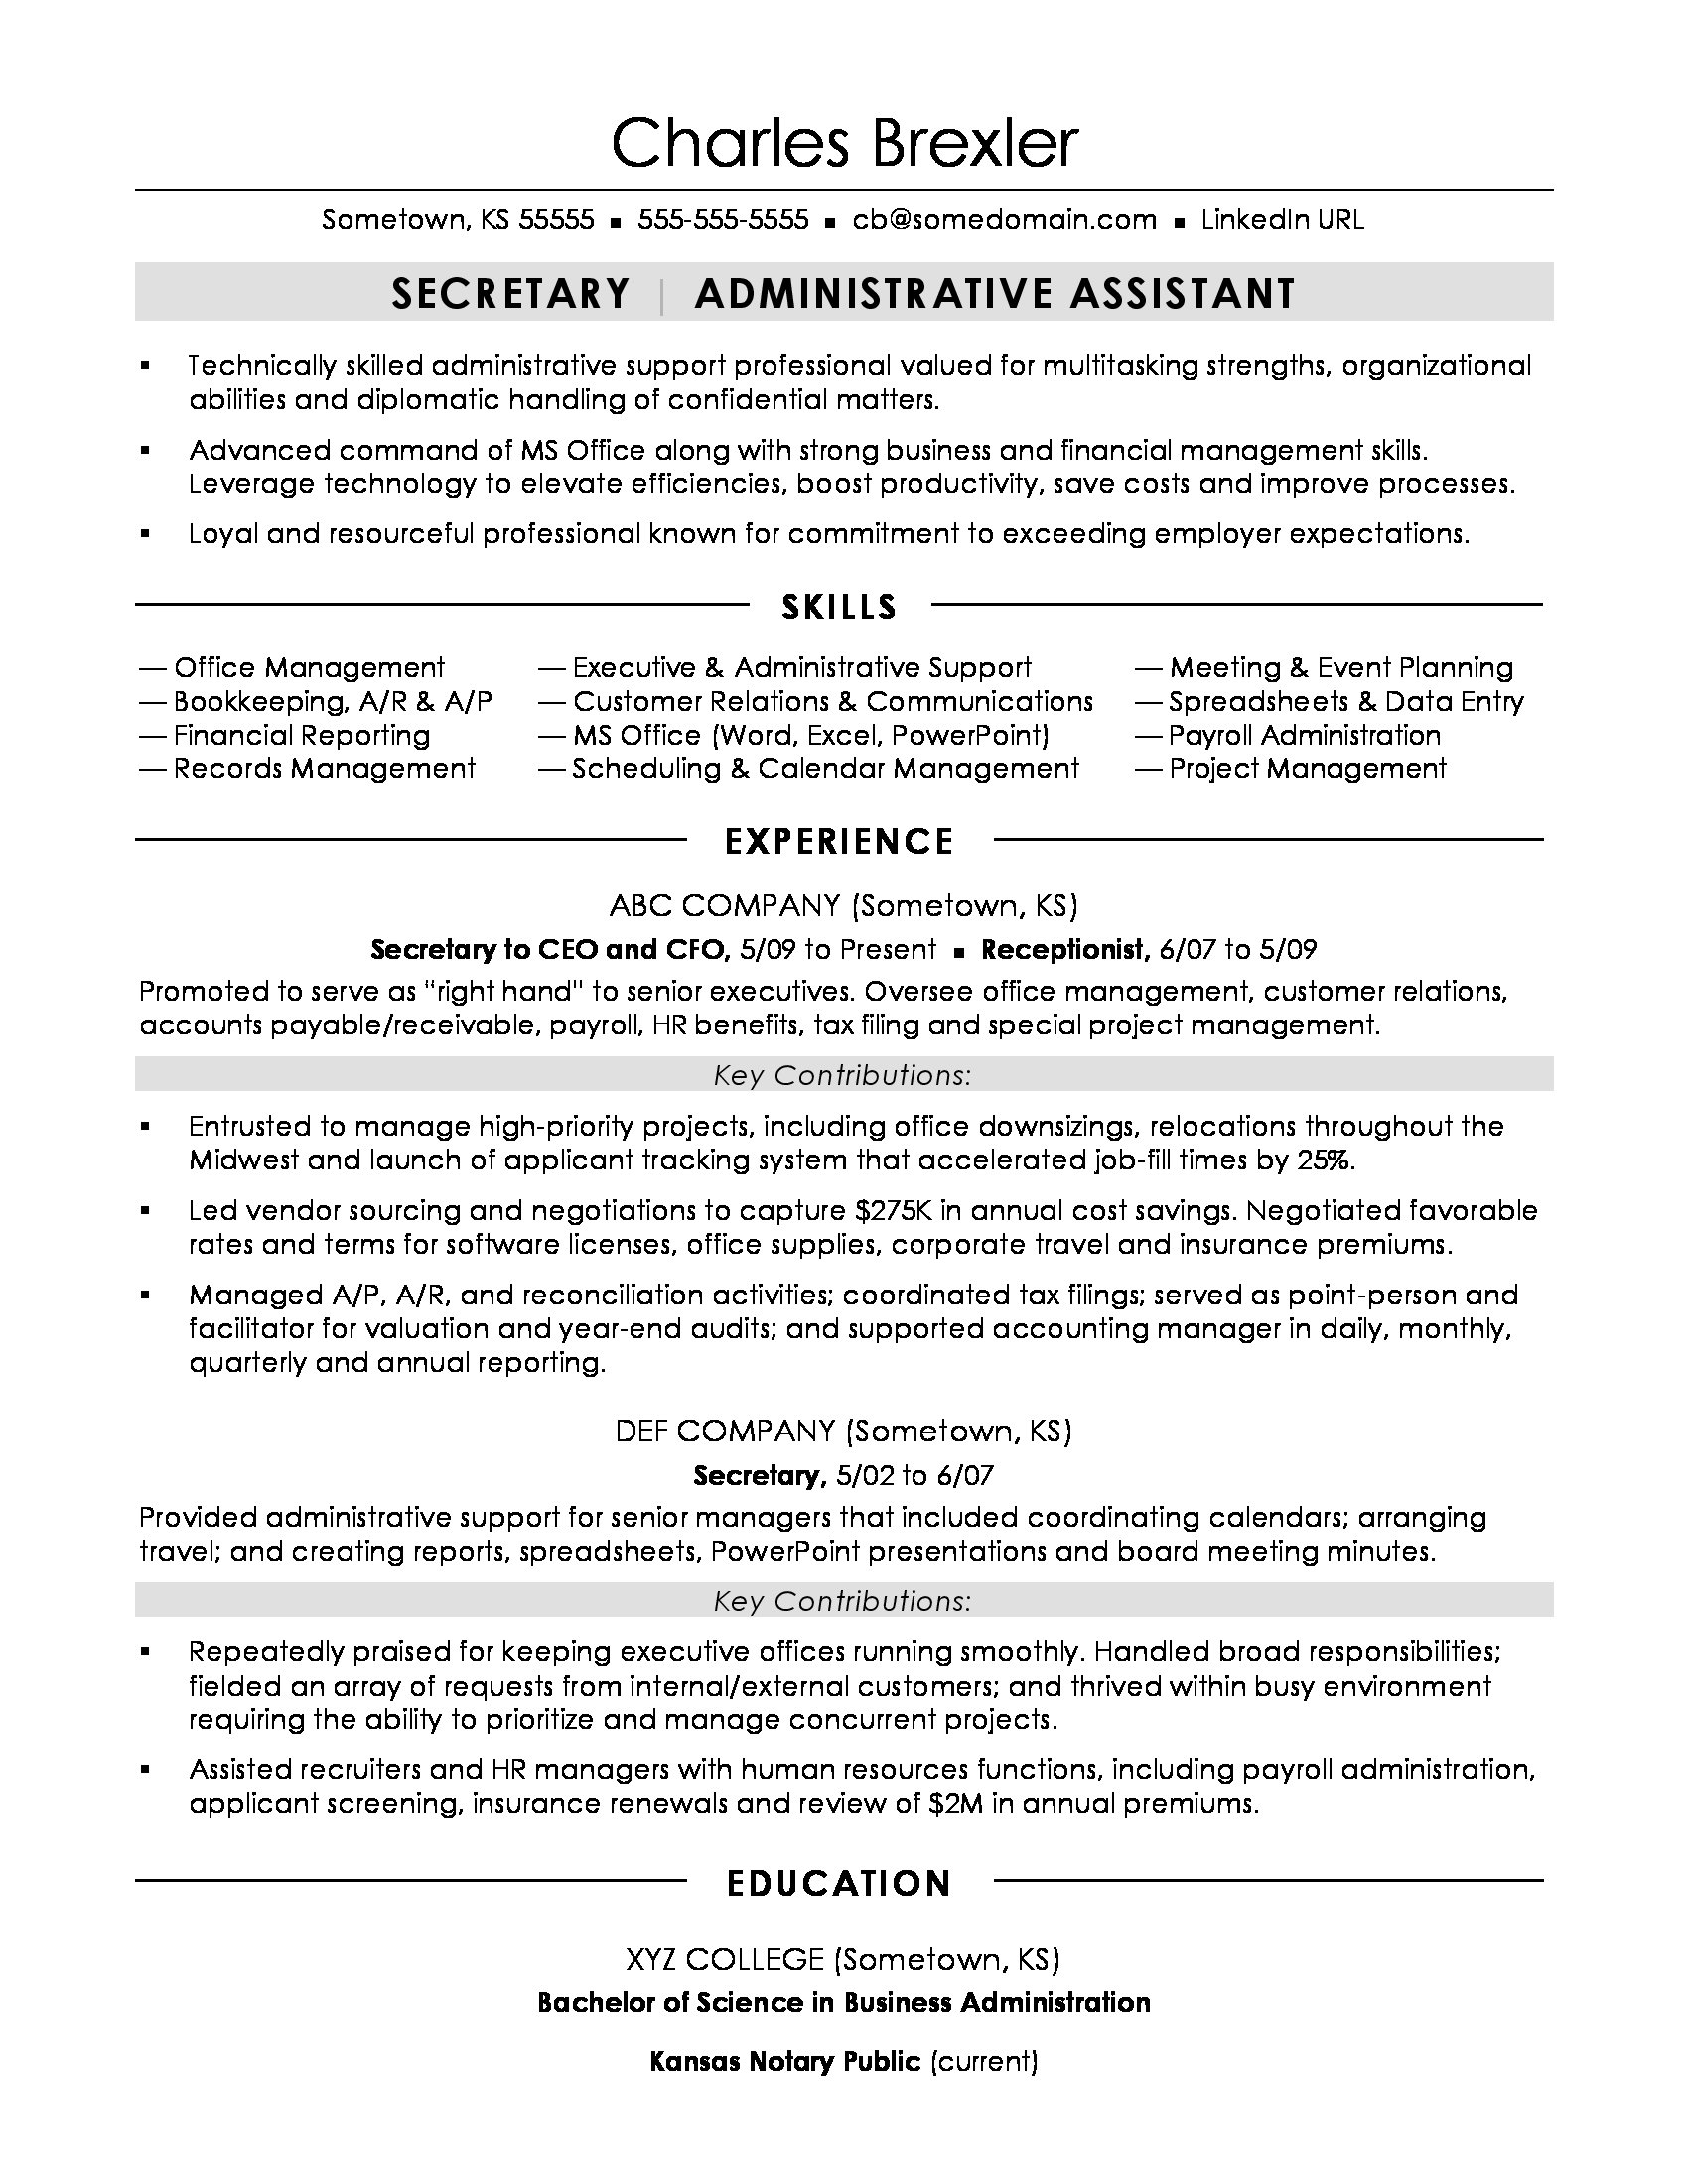 Secretary Resume Sample Monstercom